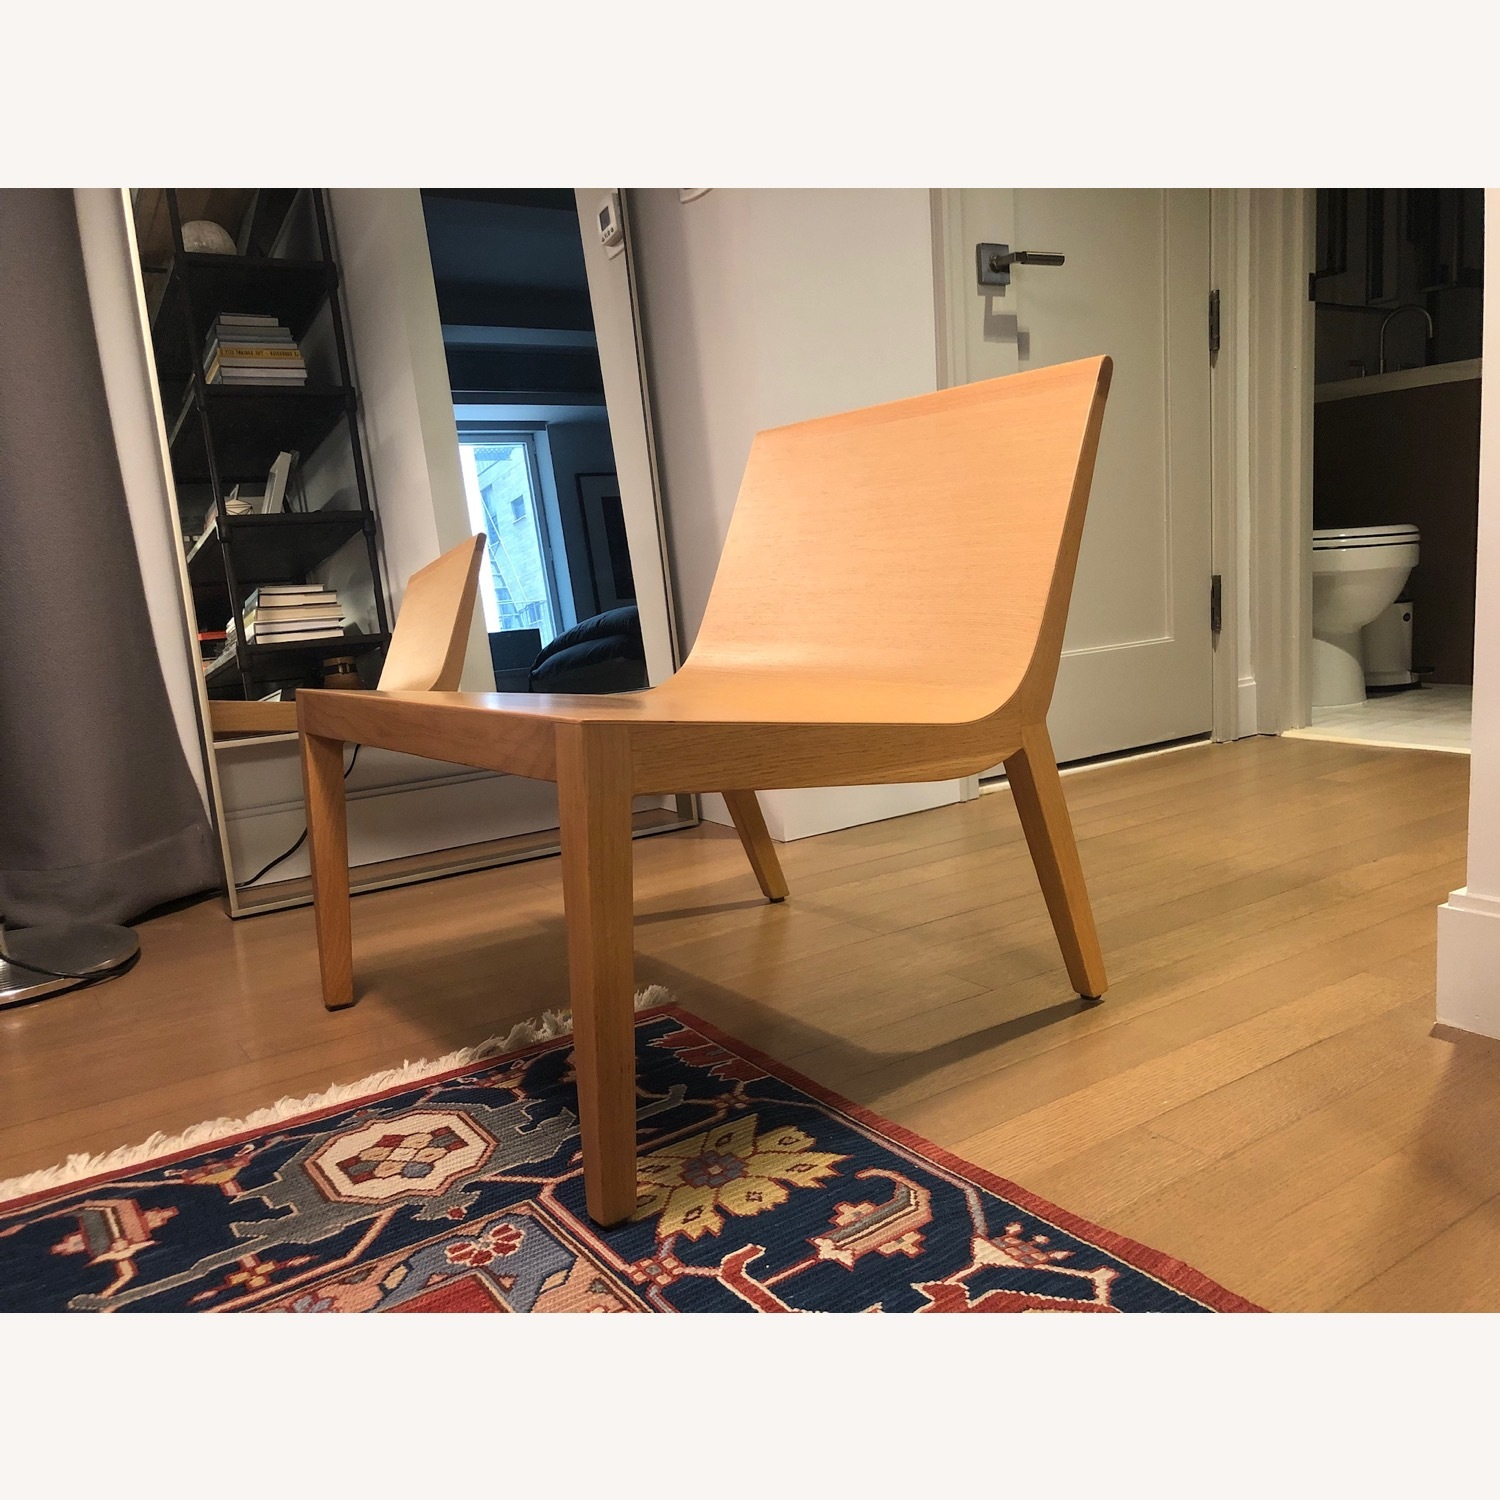 Andreu World RDL Lounge Chairs - image-1